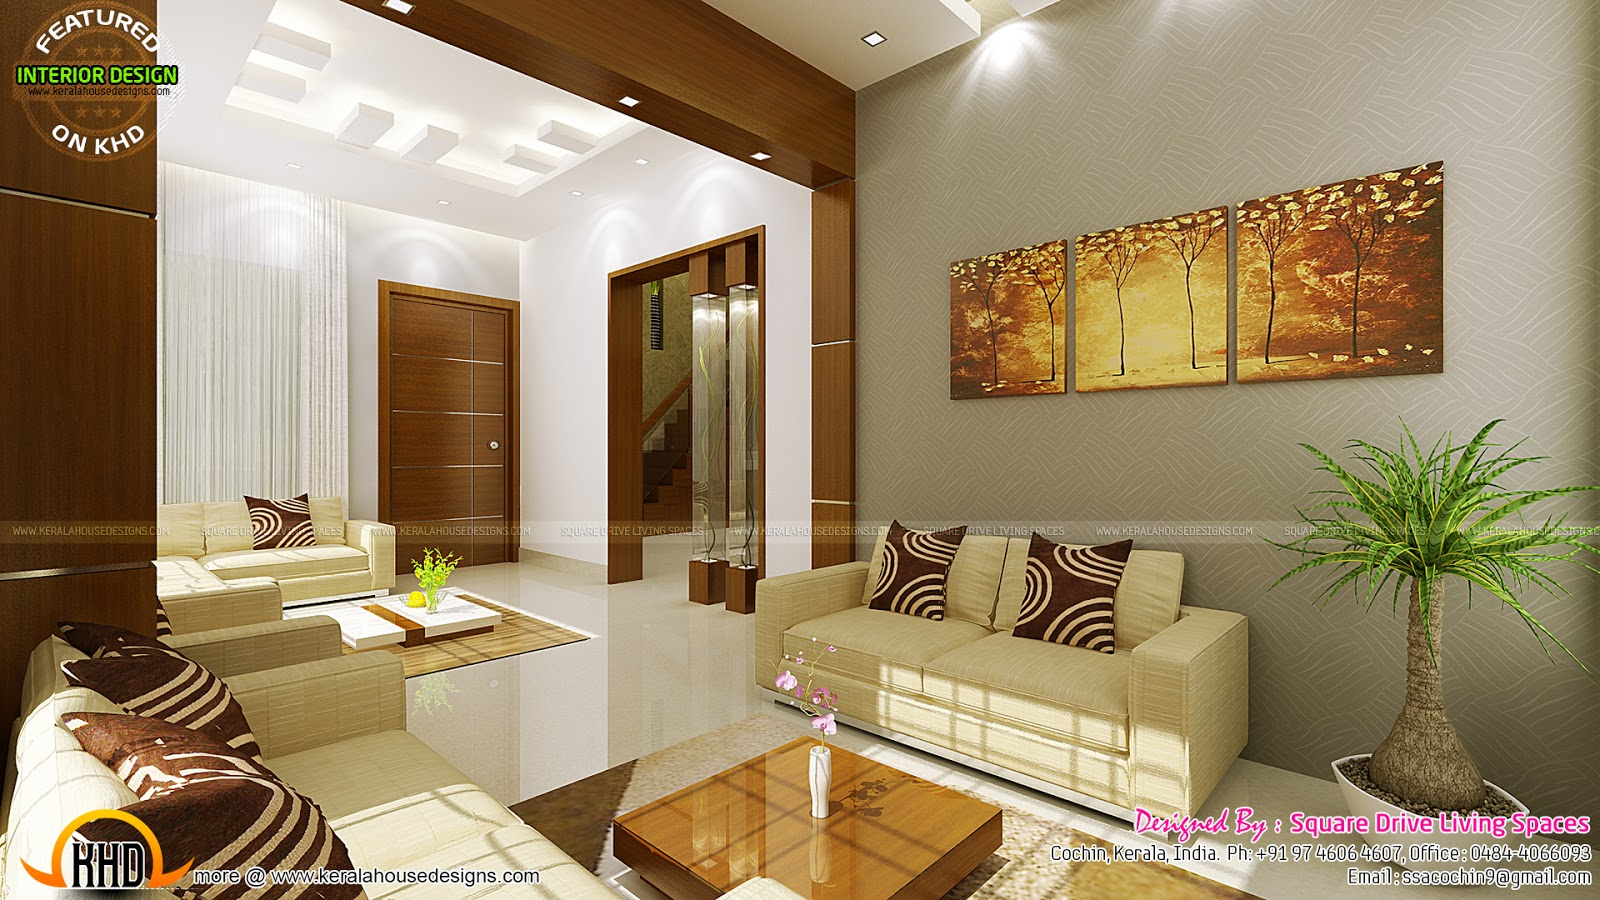 Contemporary kitchen dining and living room kerala home for Interior design house living room